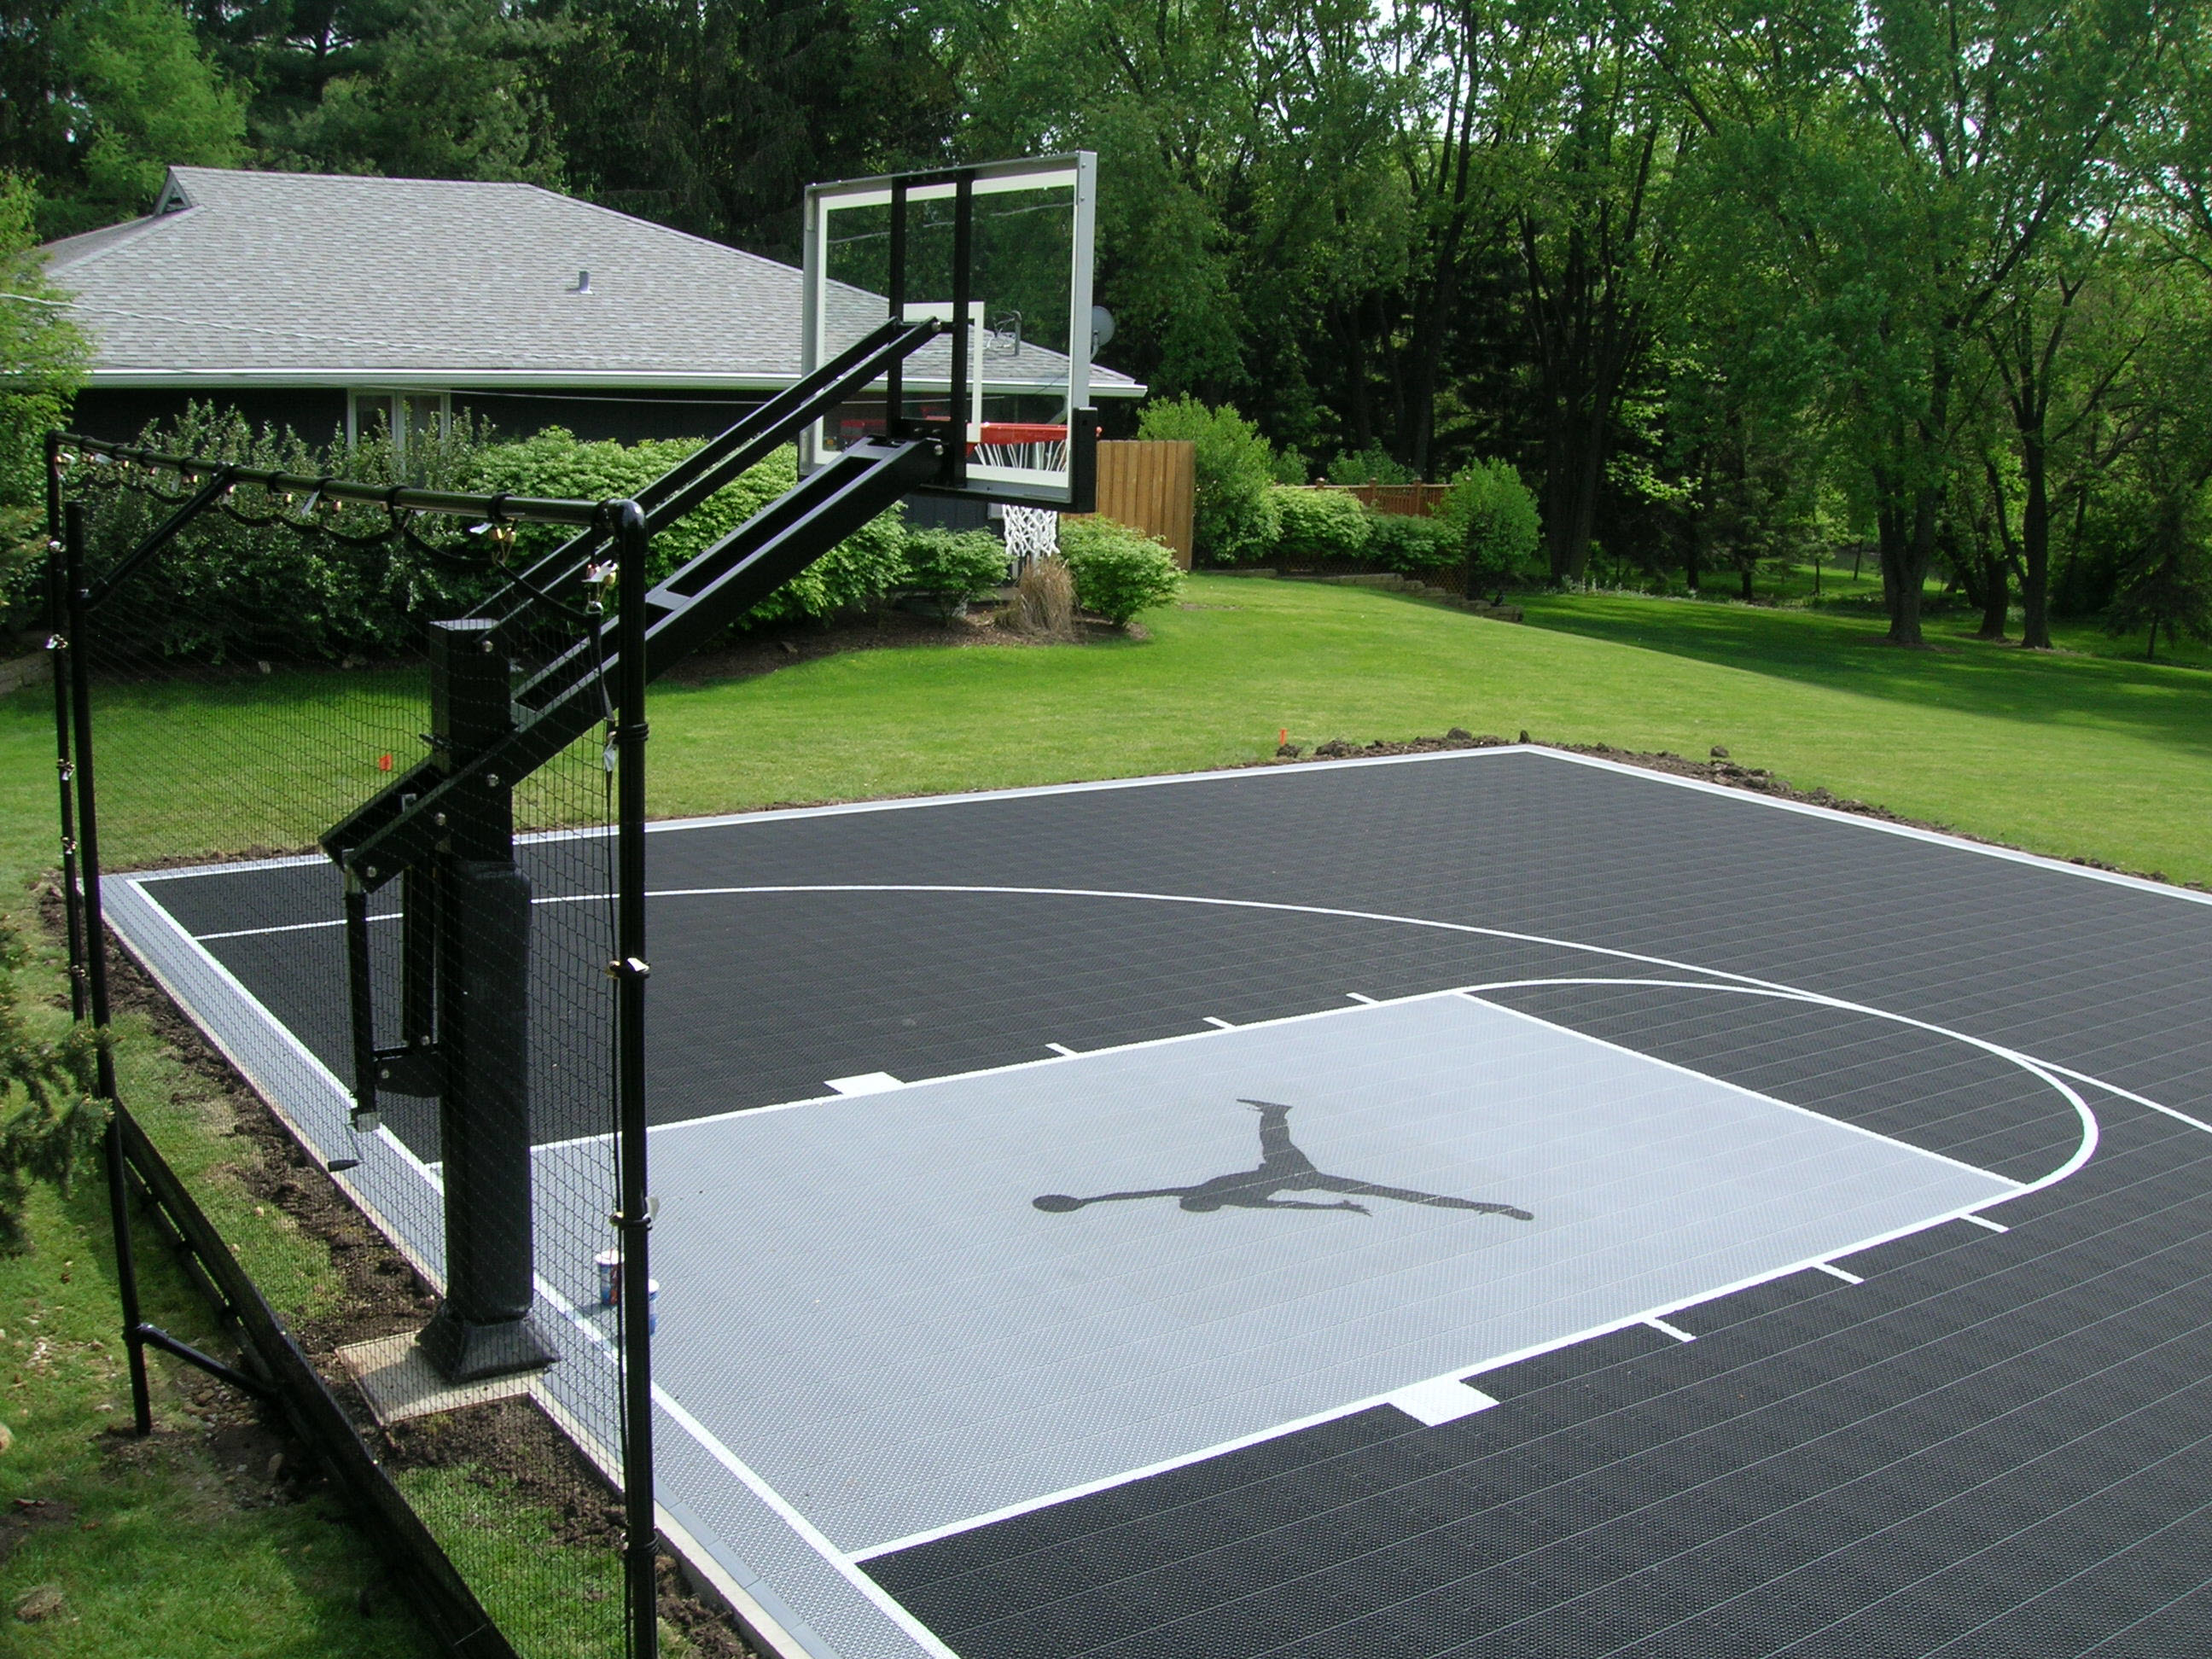 Basketporn top 13 backyard basketball courts basketporn for Backyard sport court